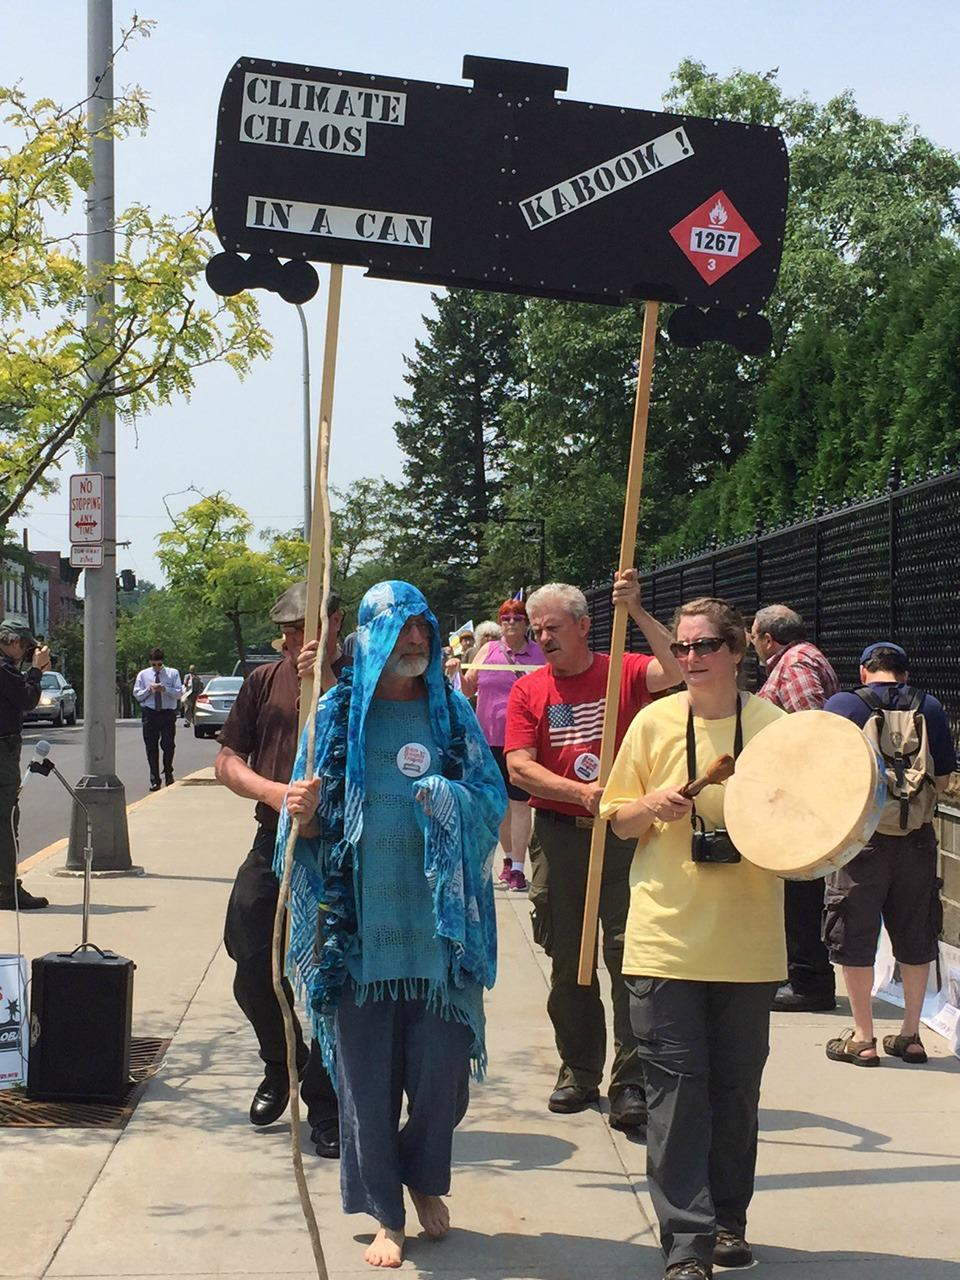 Protestors of Bakken Oil Trains rally for Lac-Megantic anniversary CREDIT JENNA FLANAGAN / NEW YORK NOW